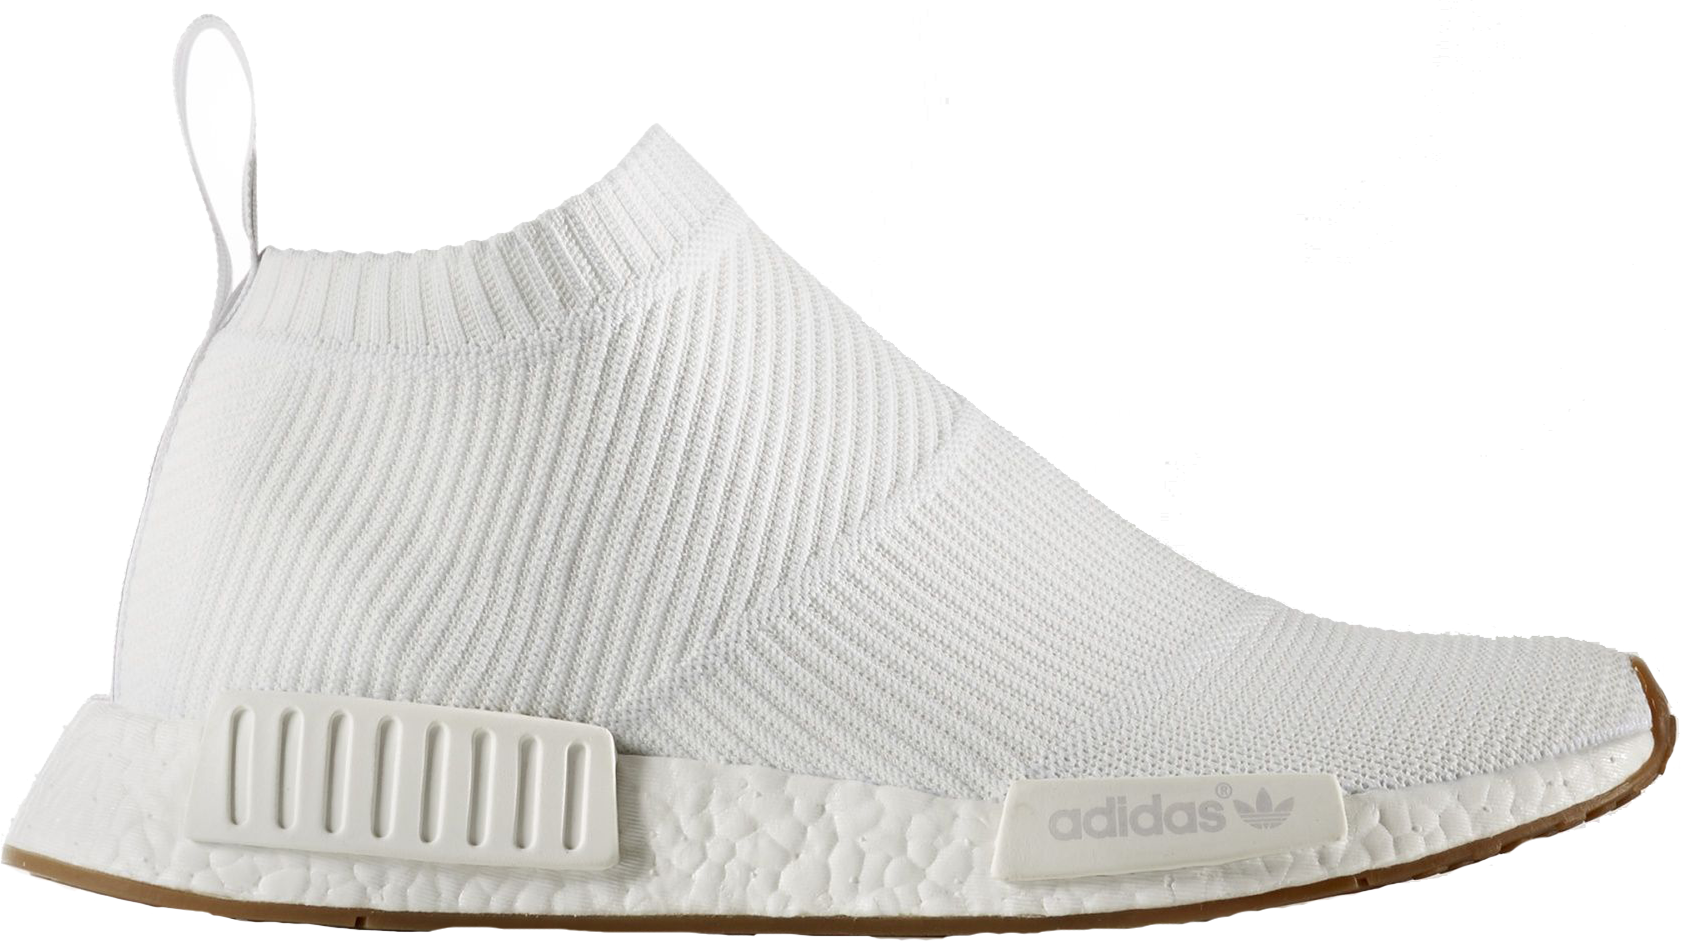 adidas NMD City Sock Gum Pack White